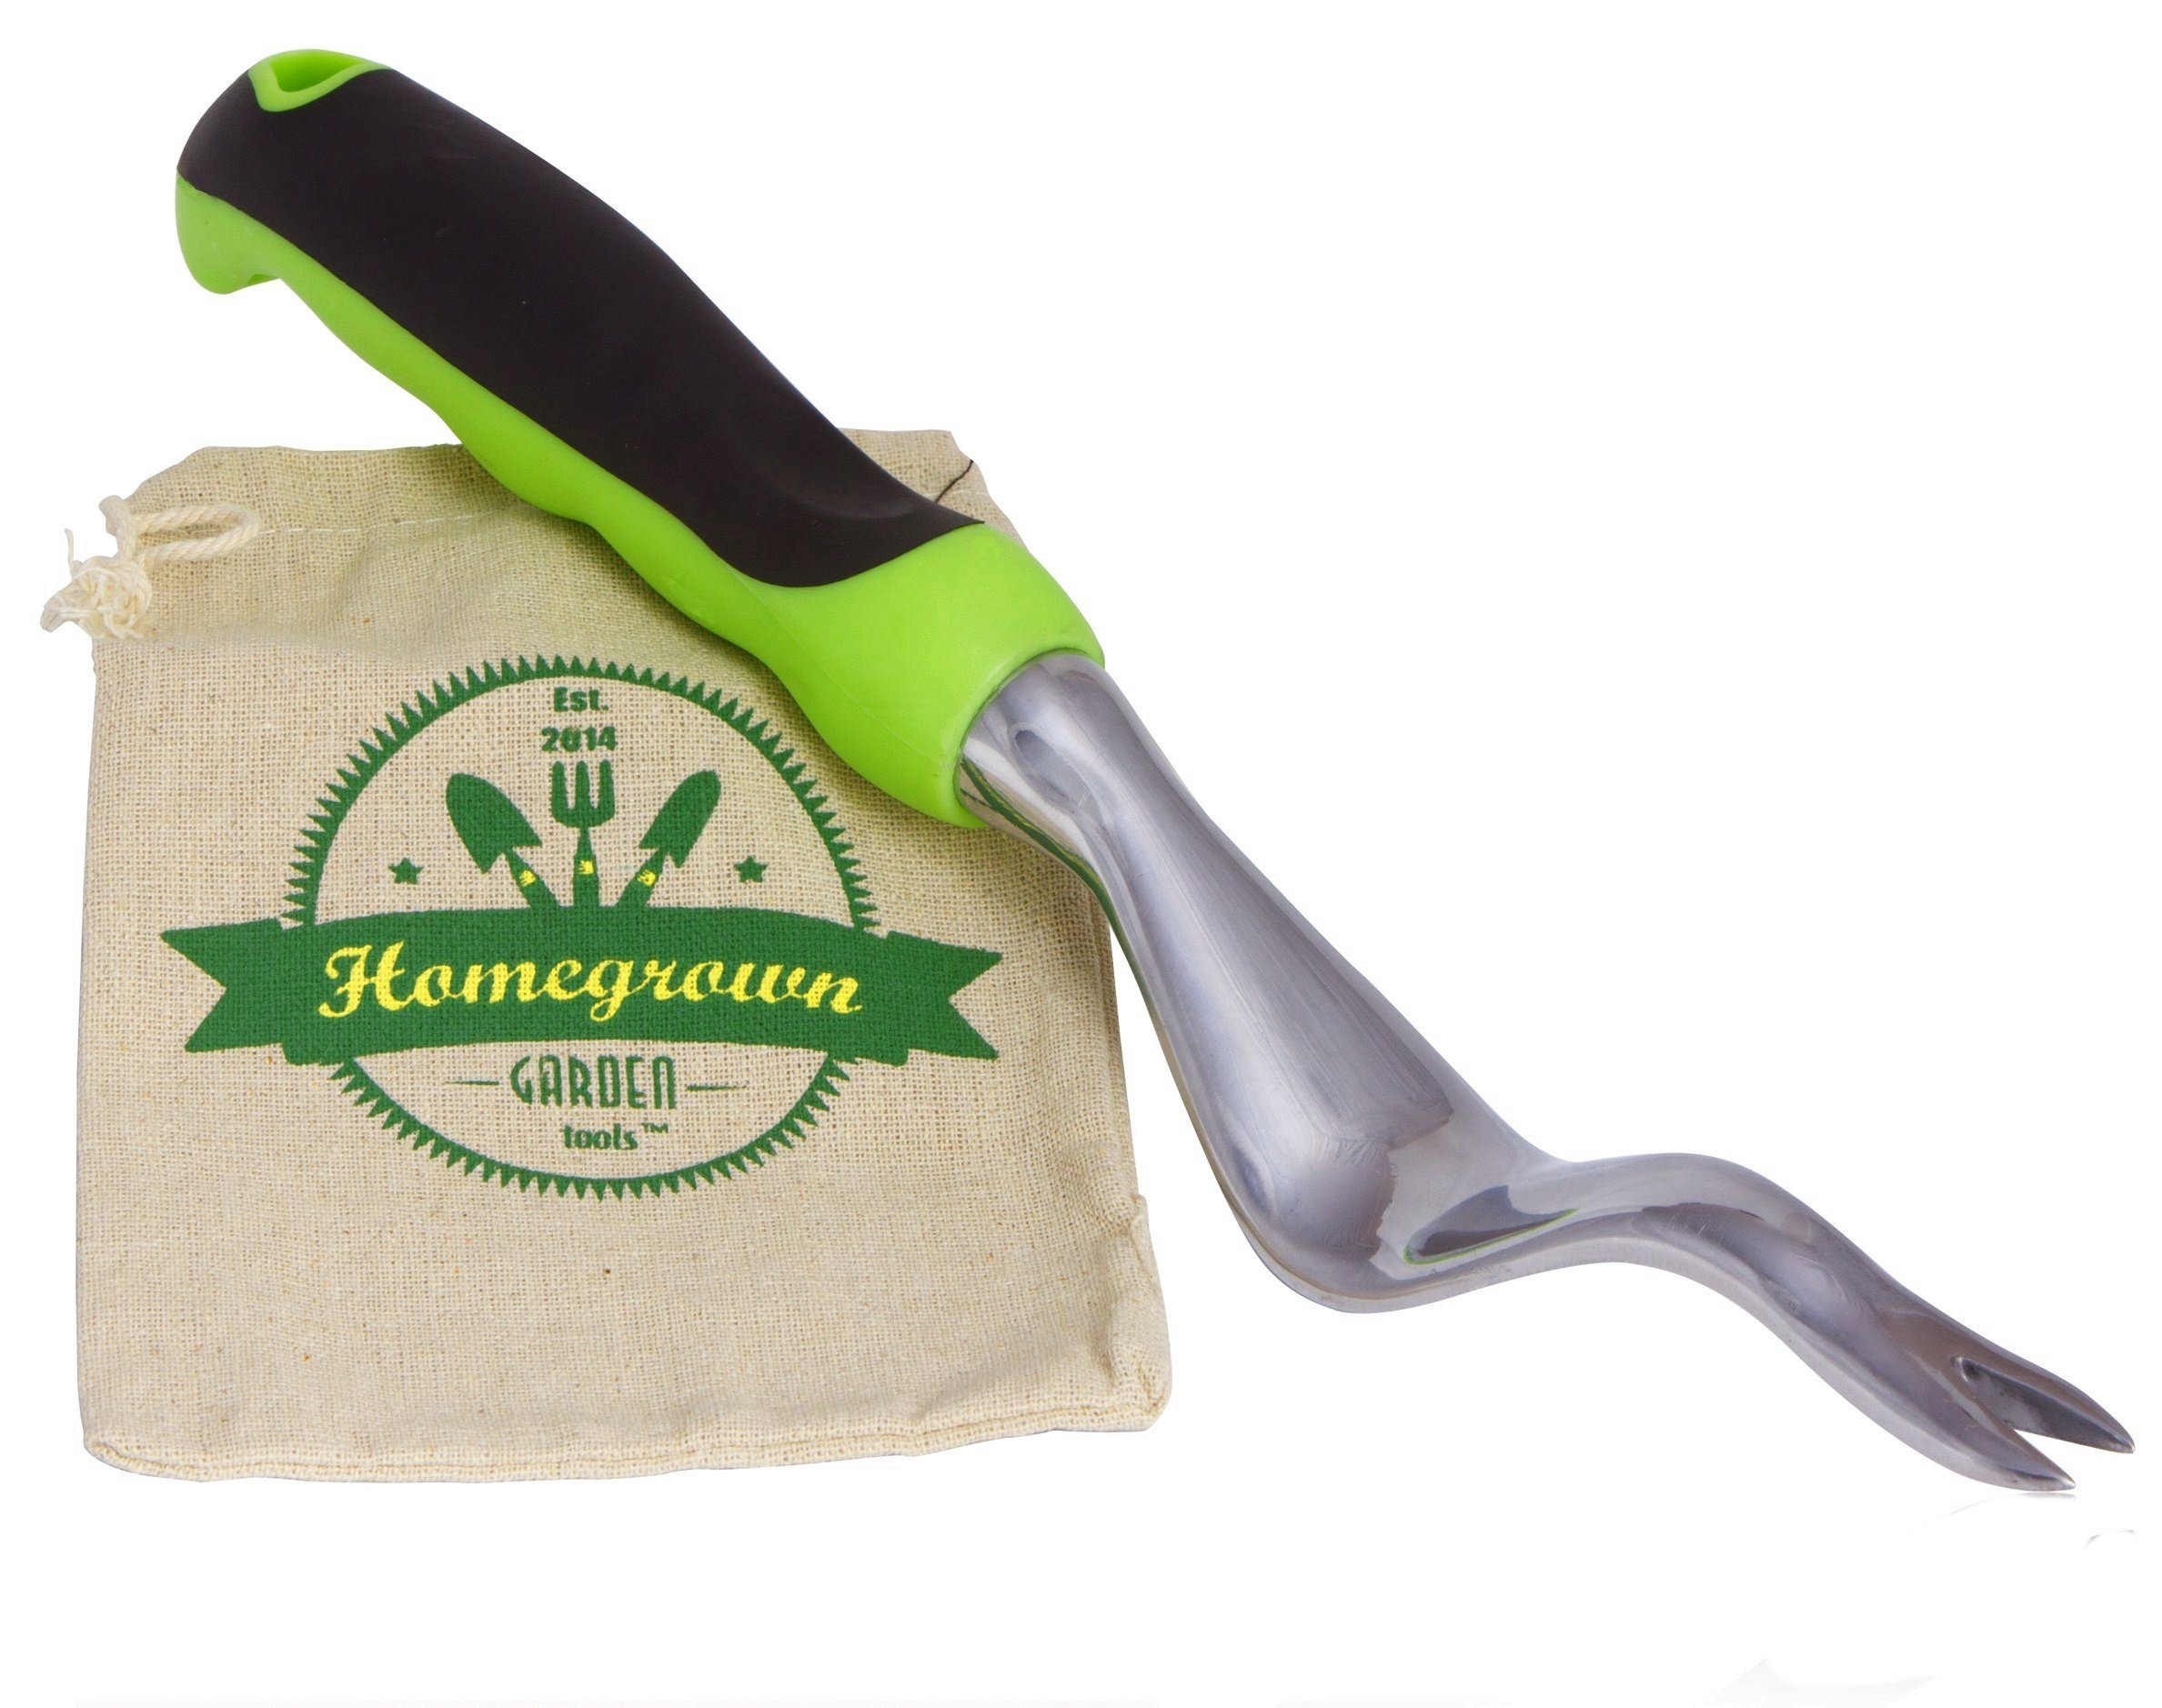 Hand Weeder from Homegrown Garden Tools; Manual Weed Remover with Large Ergonomic Handle; Best for Lawn & Garden Weeding, Includes Burlap Tote Sack - Makes Great Gift